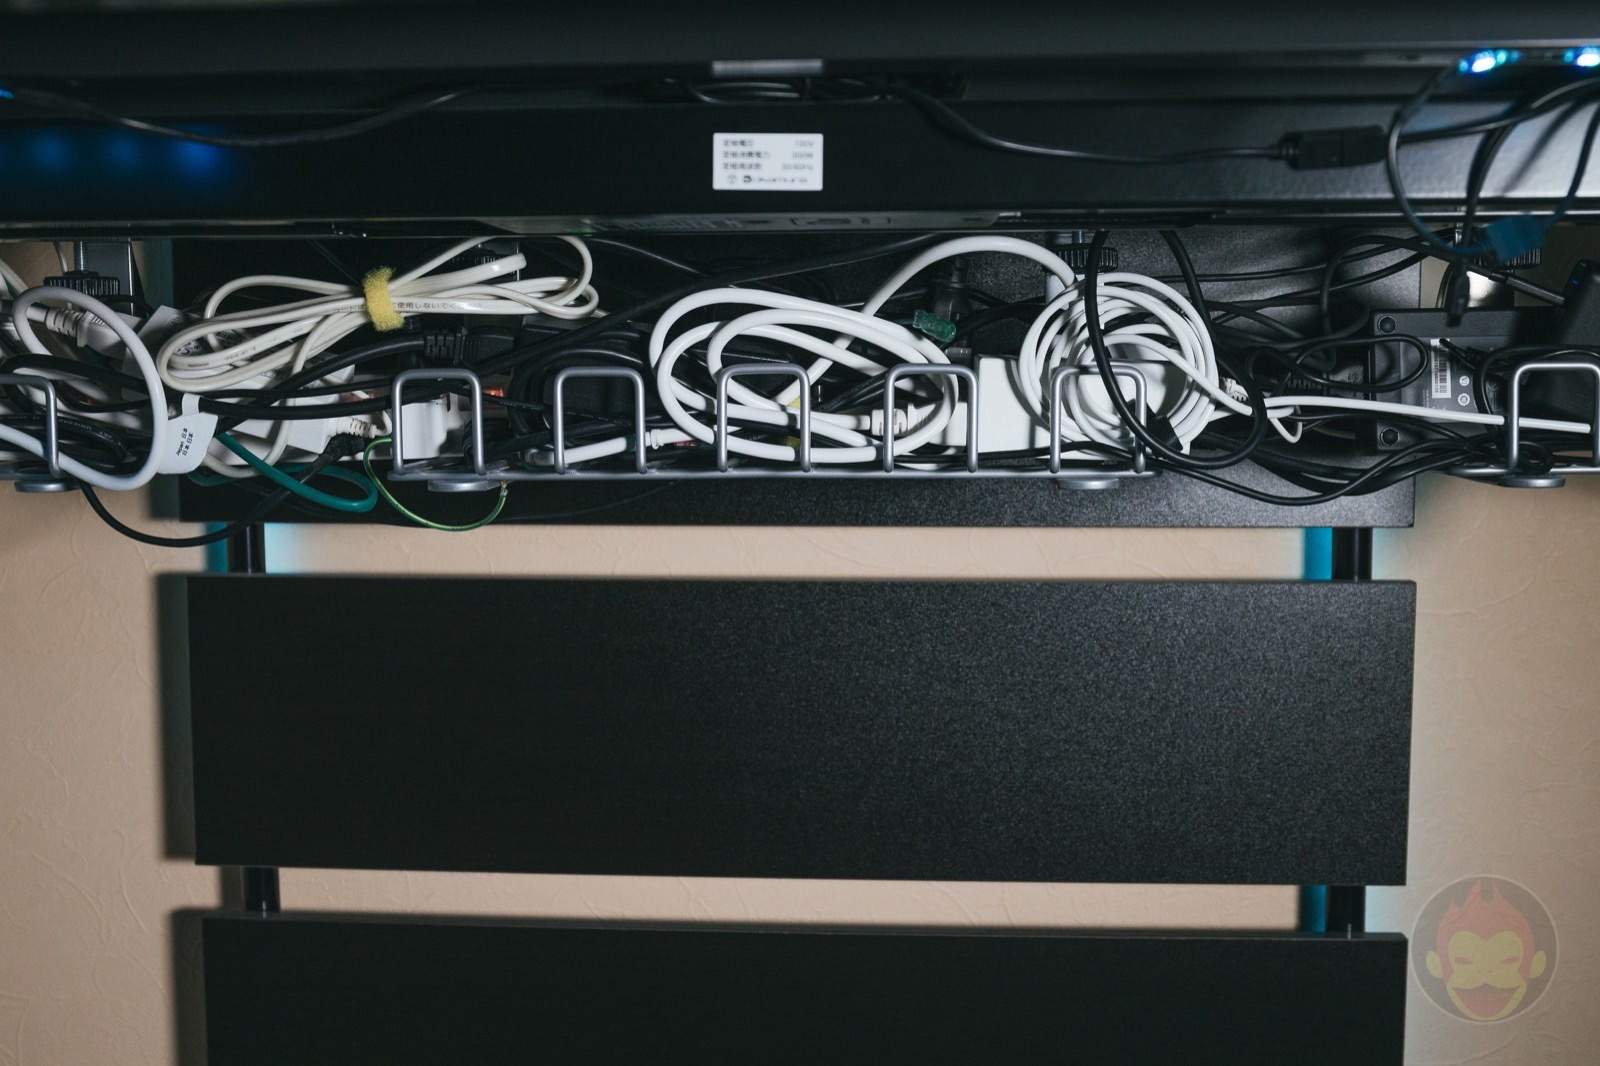 Cable-Management-Tips-02.jpg